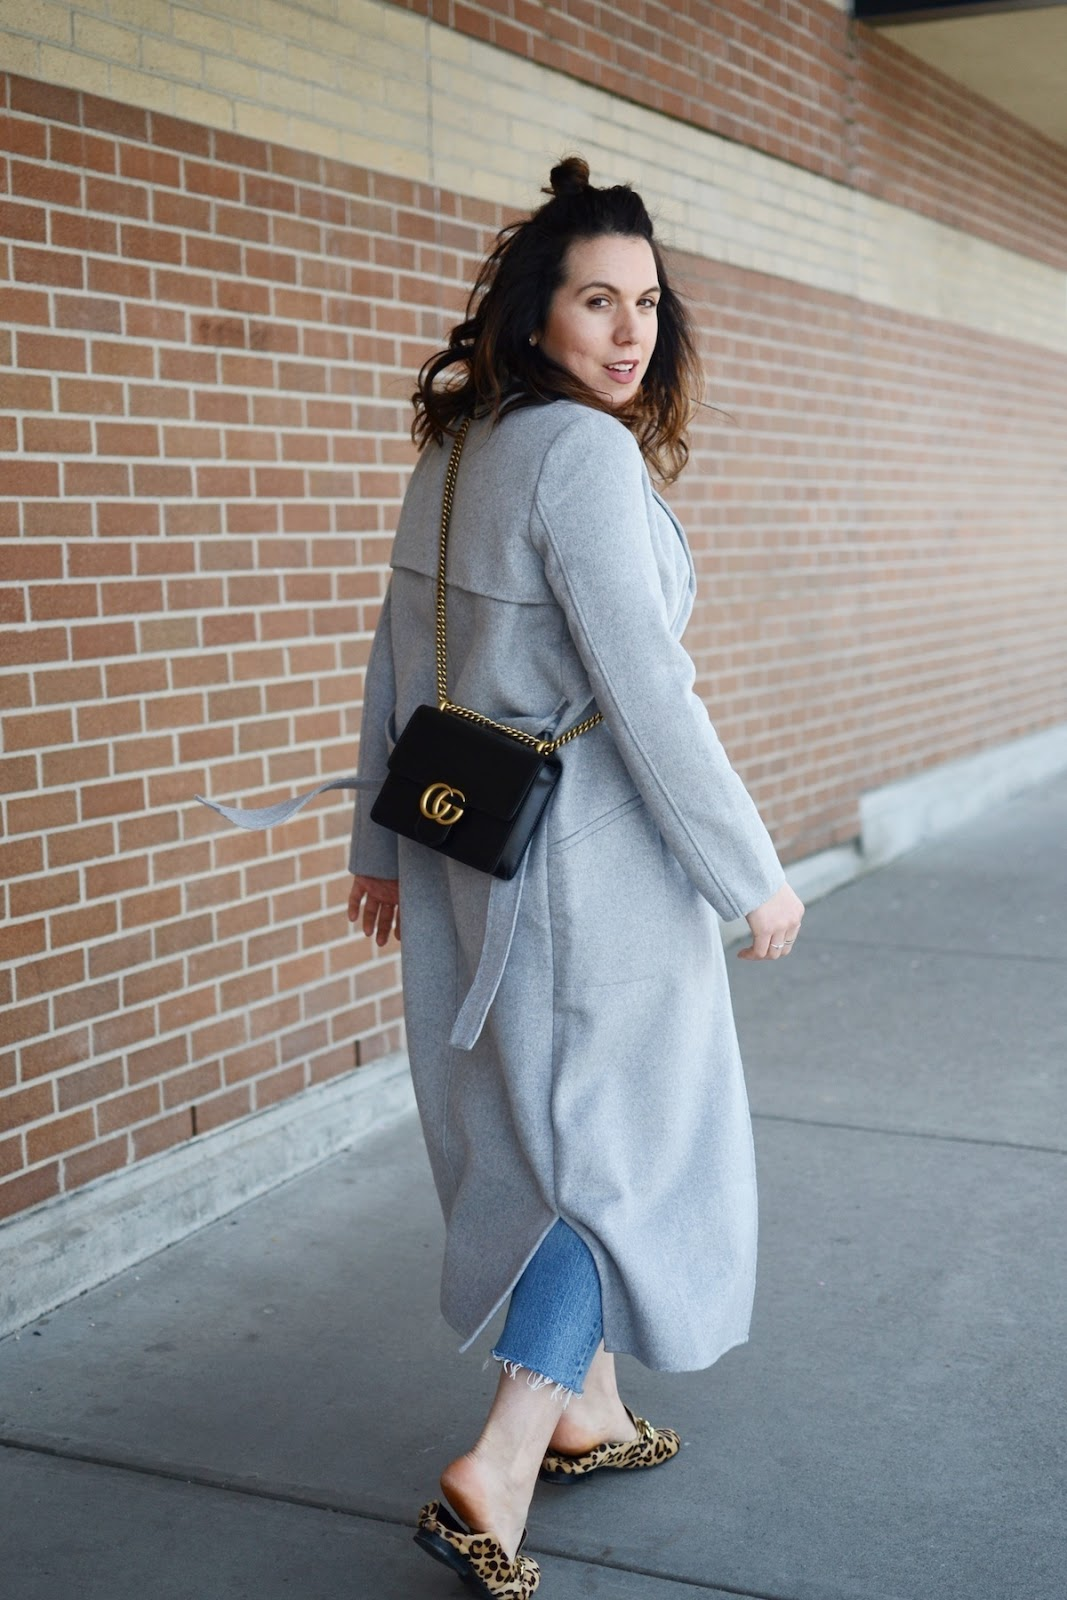 Gucci Marmont bag vancouver blogger outfit grey wool Tom Taylor coat Sears levis wedgie jeans